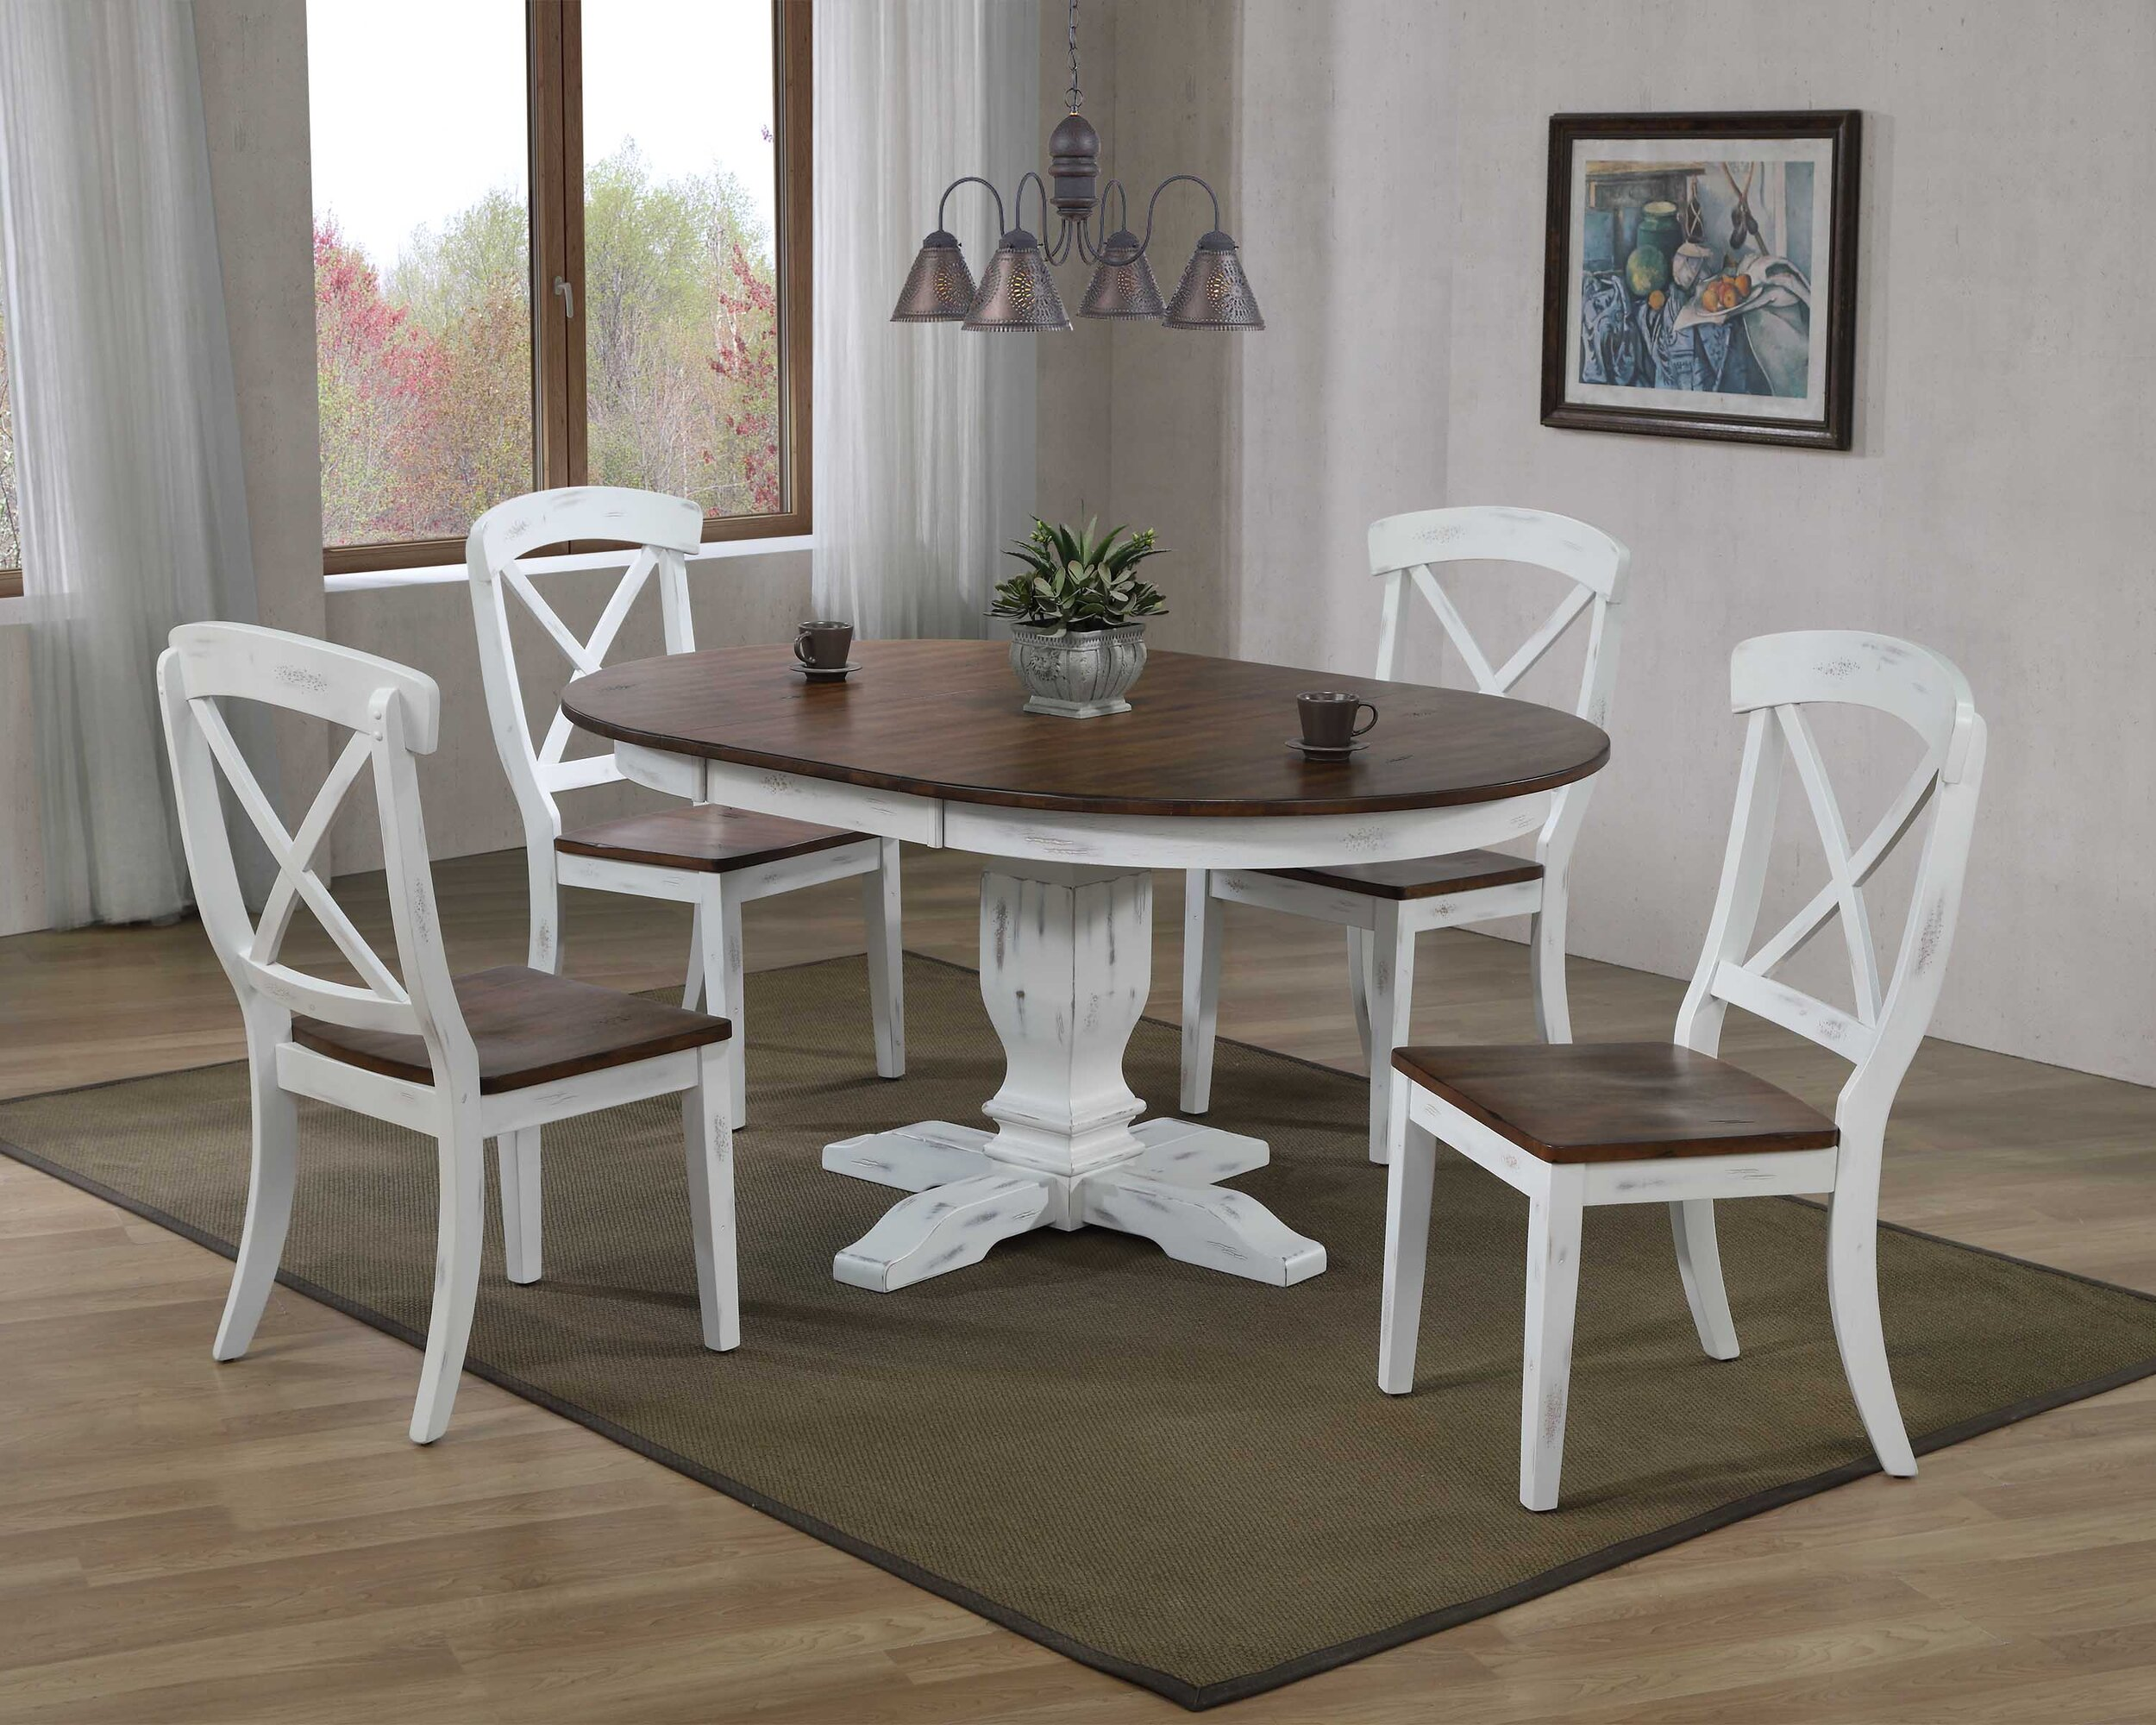 "45""x45""x63"" Transitional Distressed Cocoa Brown/Cotton White X-Back (5-Piece Dining Set)"